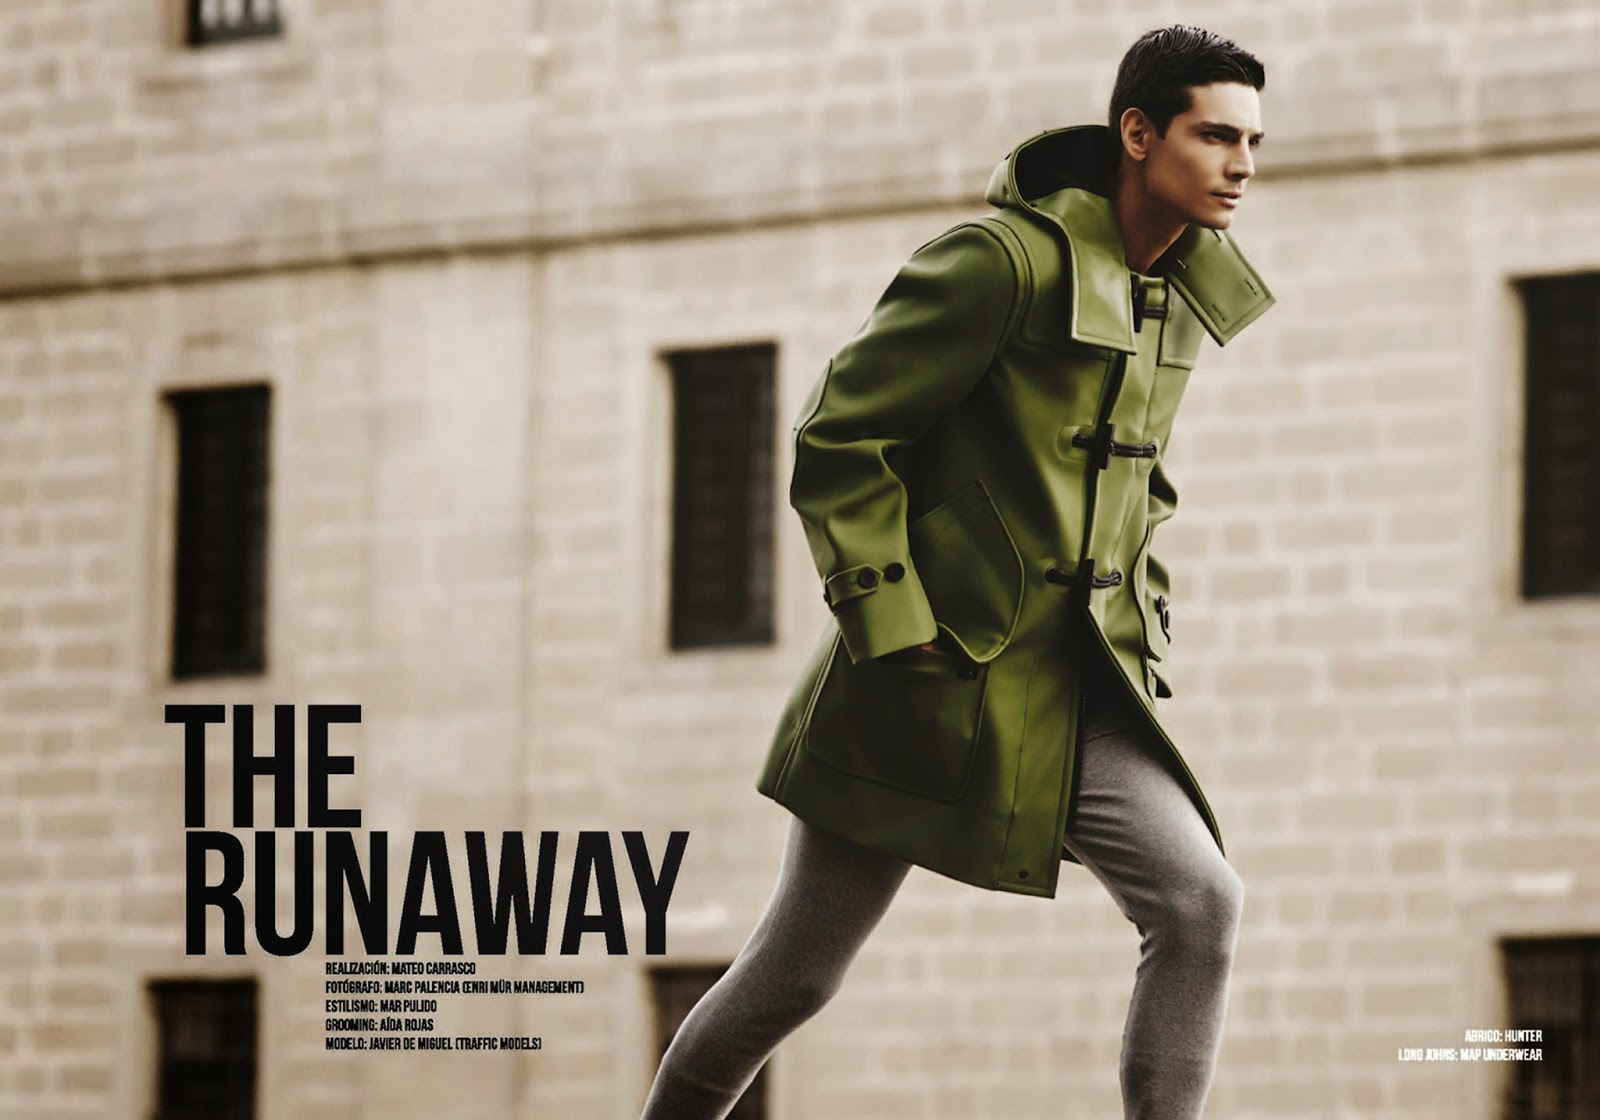 The Runway for Risbel Magazine, Created by Mateo Carrasco, photographed by Marc Palencia (Tenri Mür Management), styled by Mar Pulido, grooming by Aída Rojas and modeling by Javier de Miguel at Traffic Models.